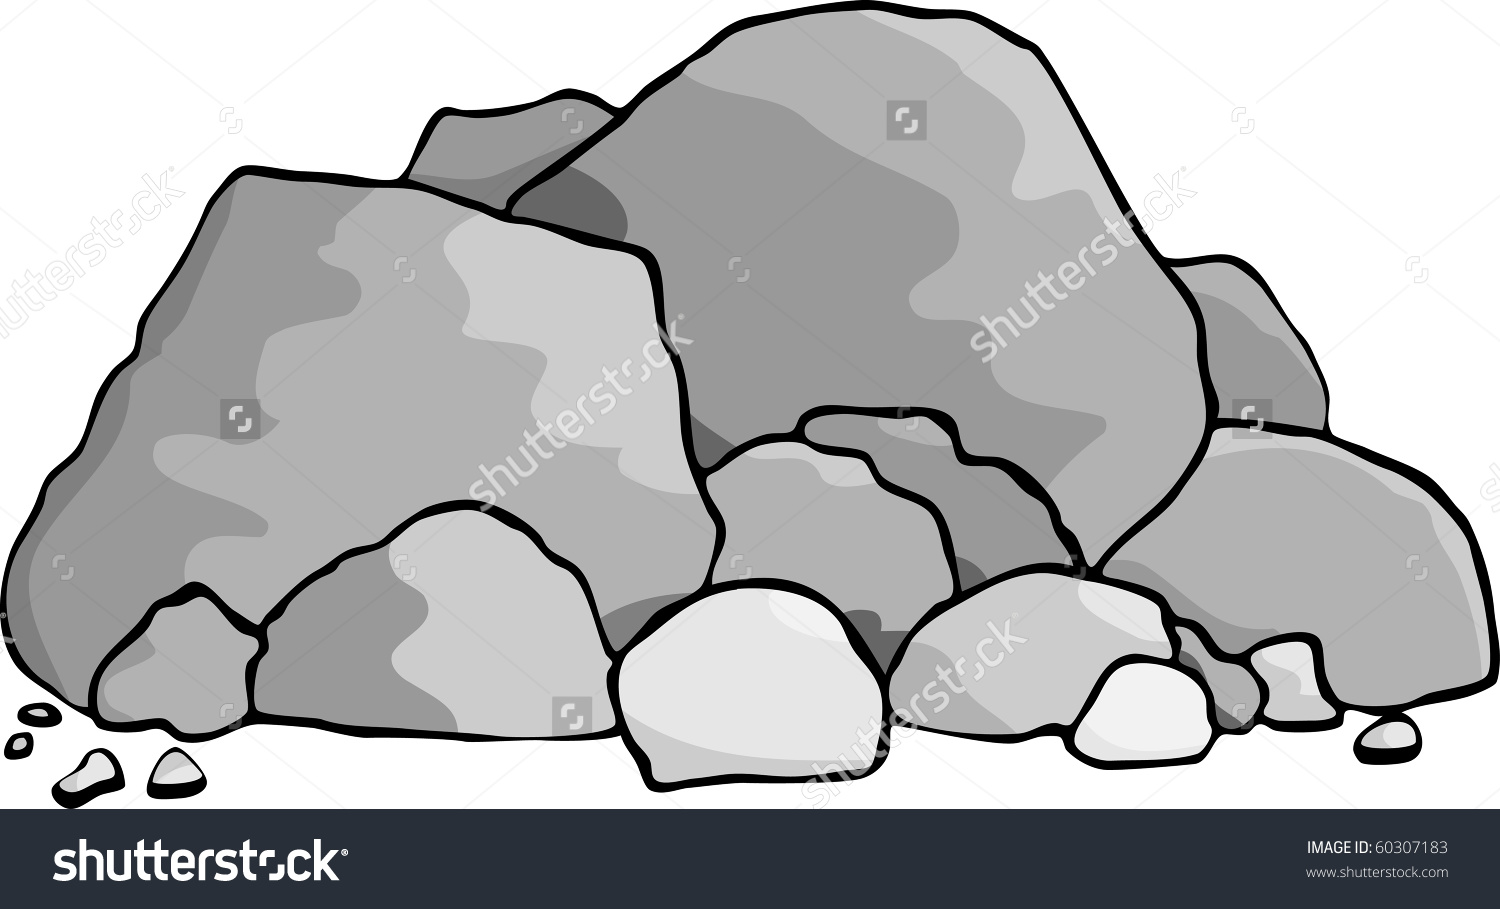 cartoon rock clipart rugby clipart images rugby clipart black and white